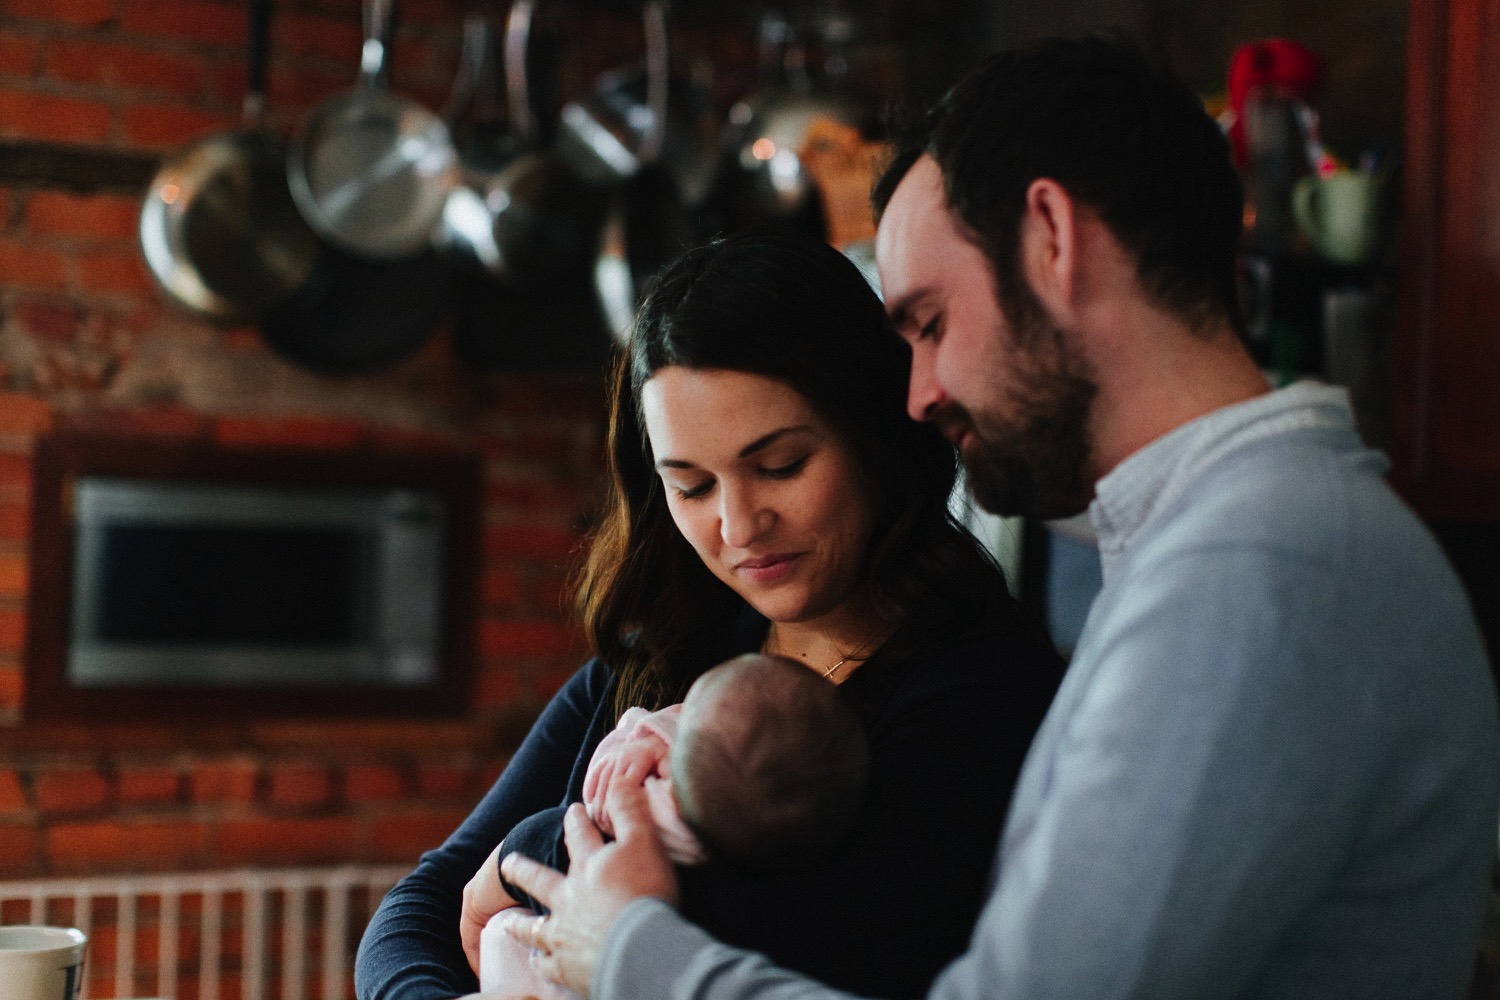 0021_16_10_12_rader_family_0091_newborn,_family_lifestyle,_Candid_photography,.jpg